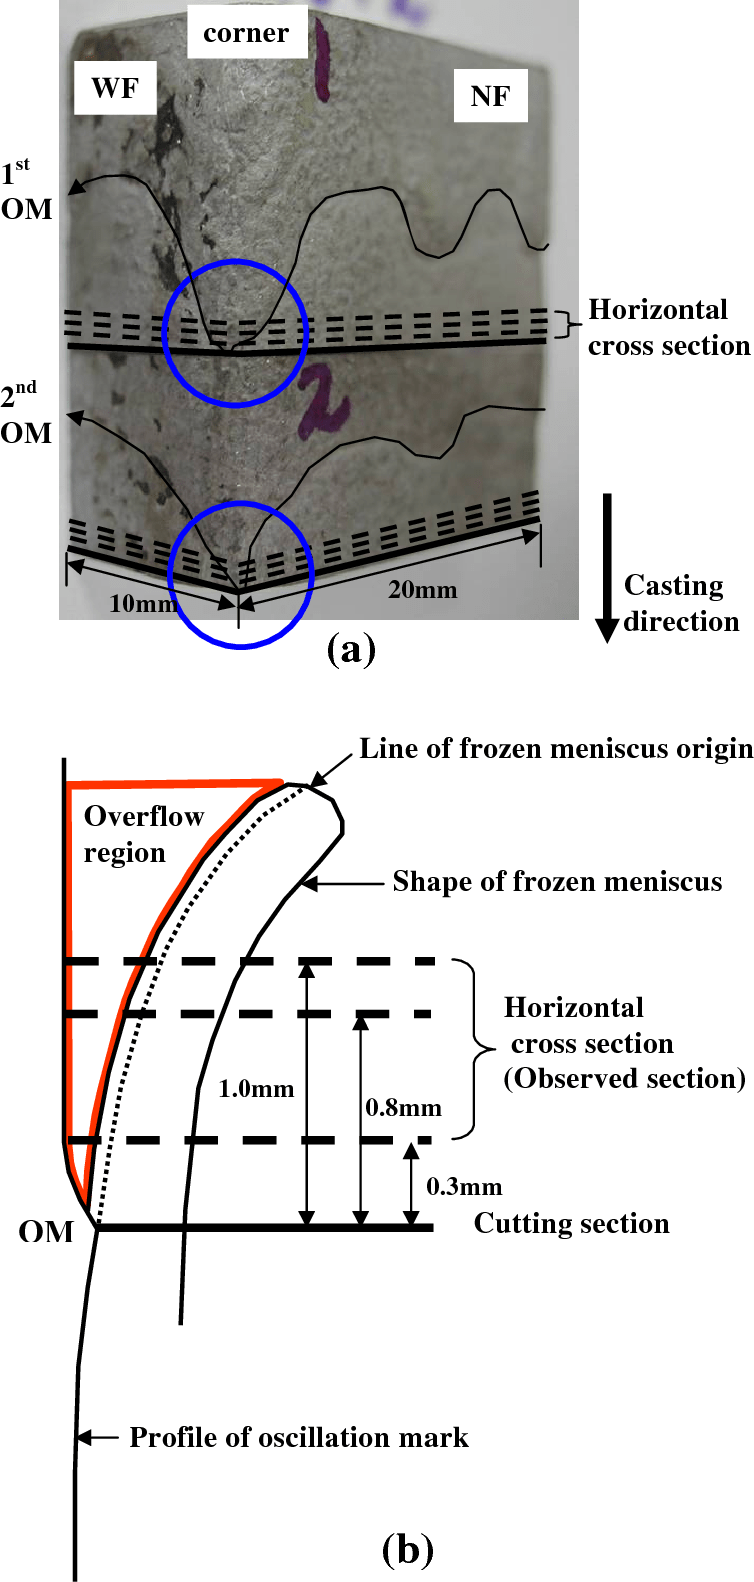 hight resolution of figure 2 from microstructure near corners of continuous cast steel corner cast diagram